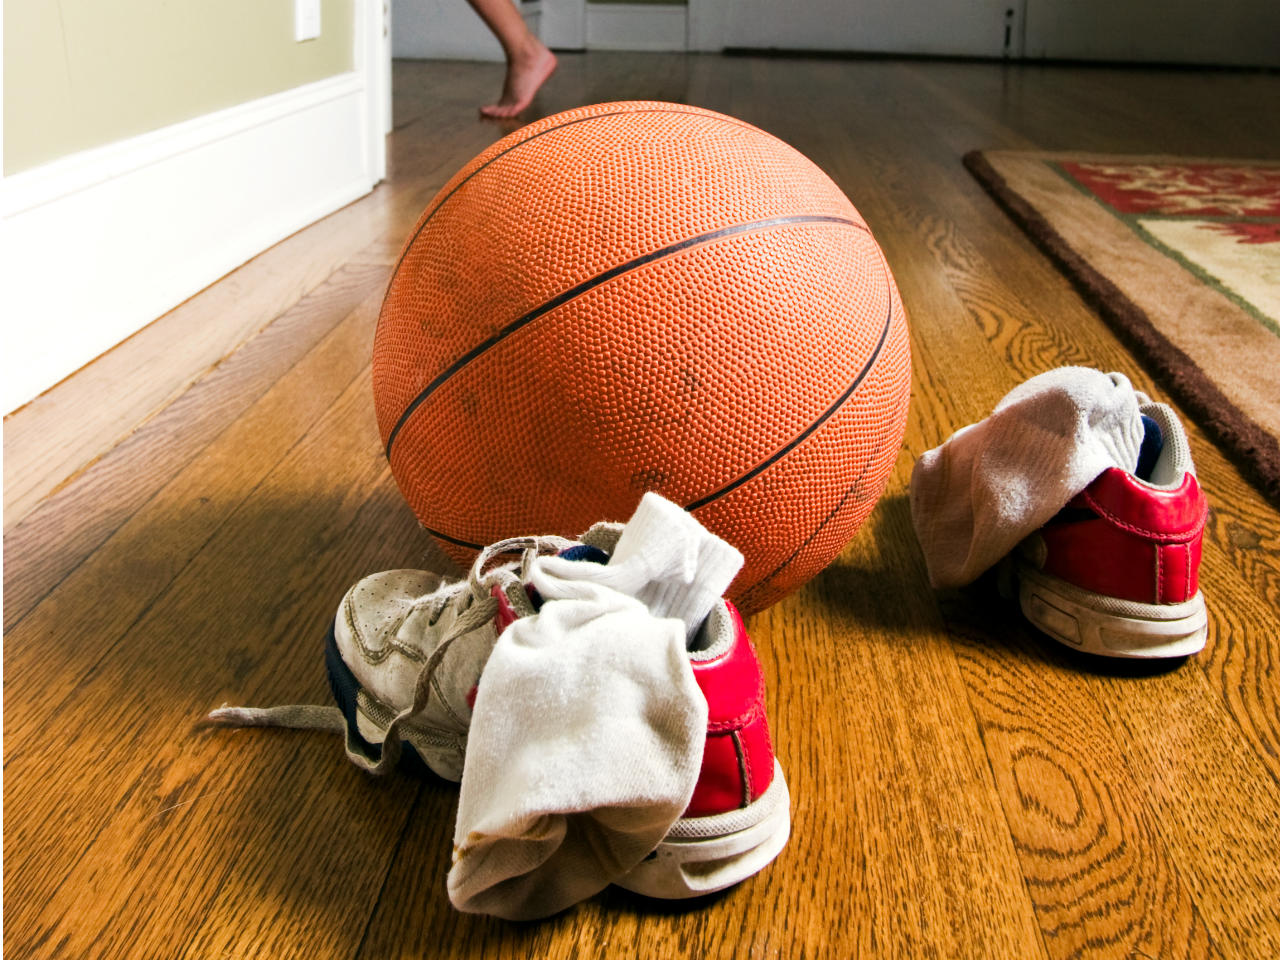 Dirty socks left lying around with sneakers and basketball